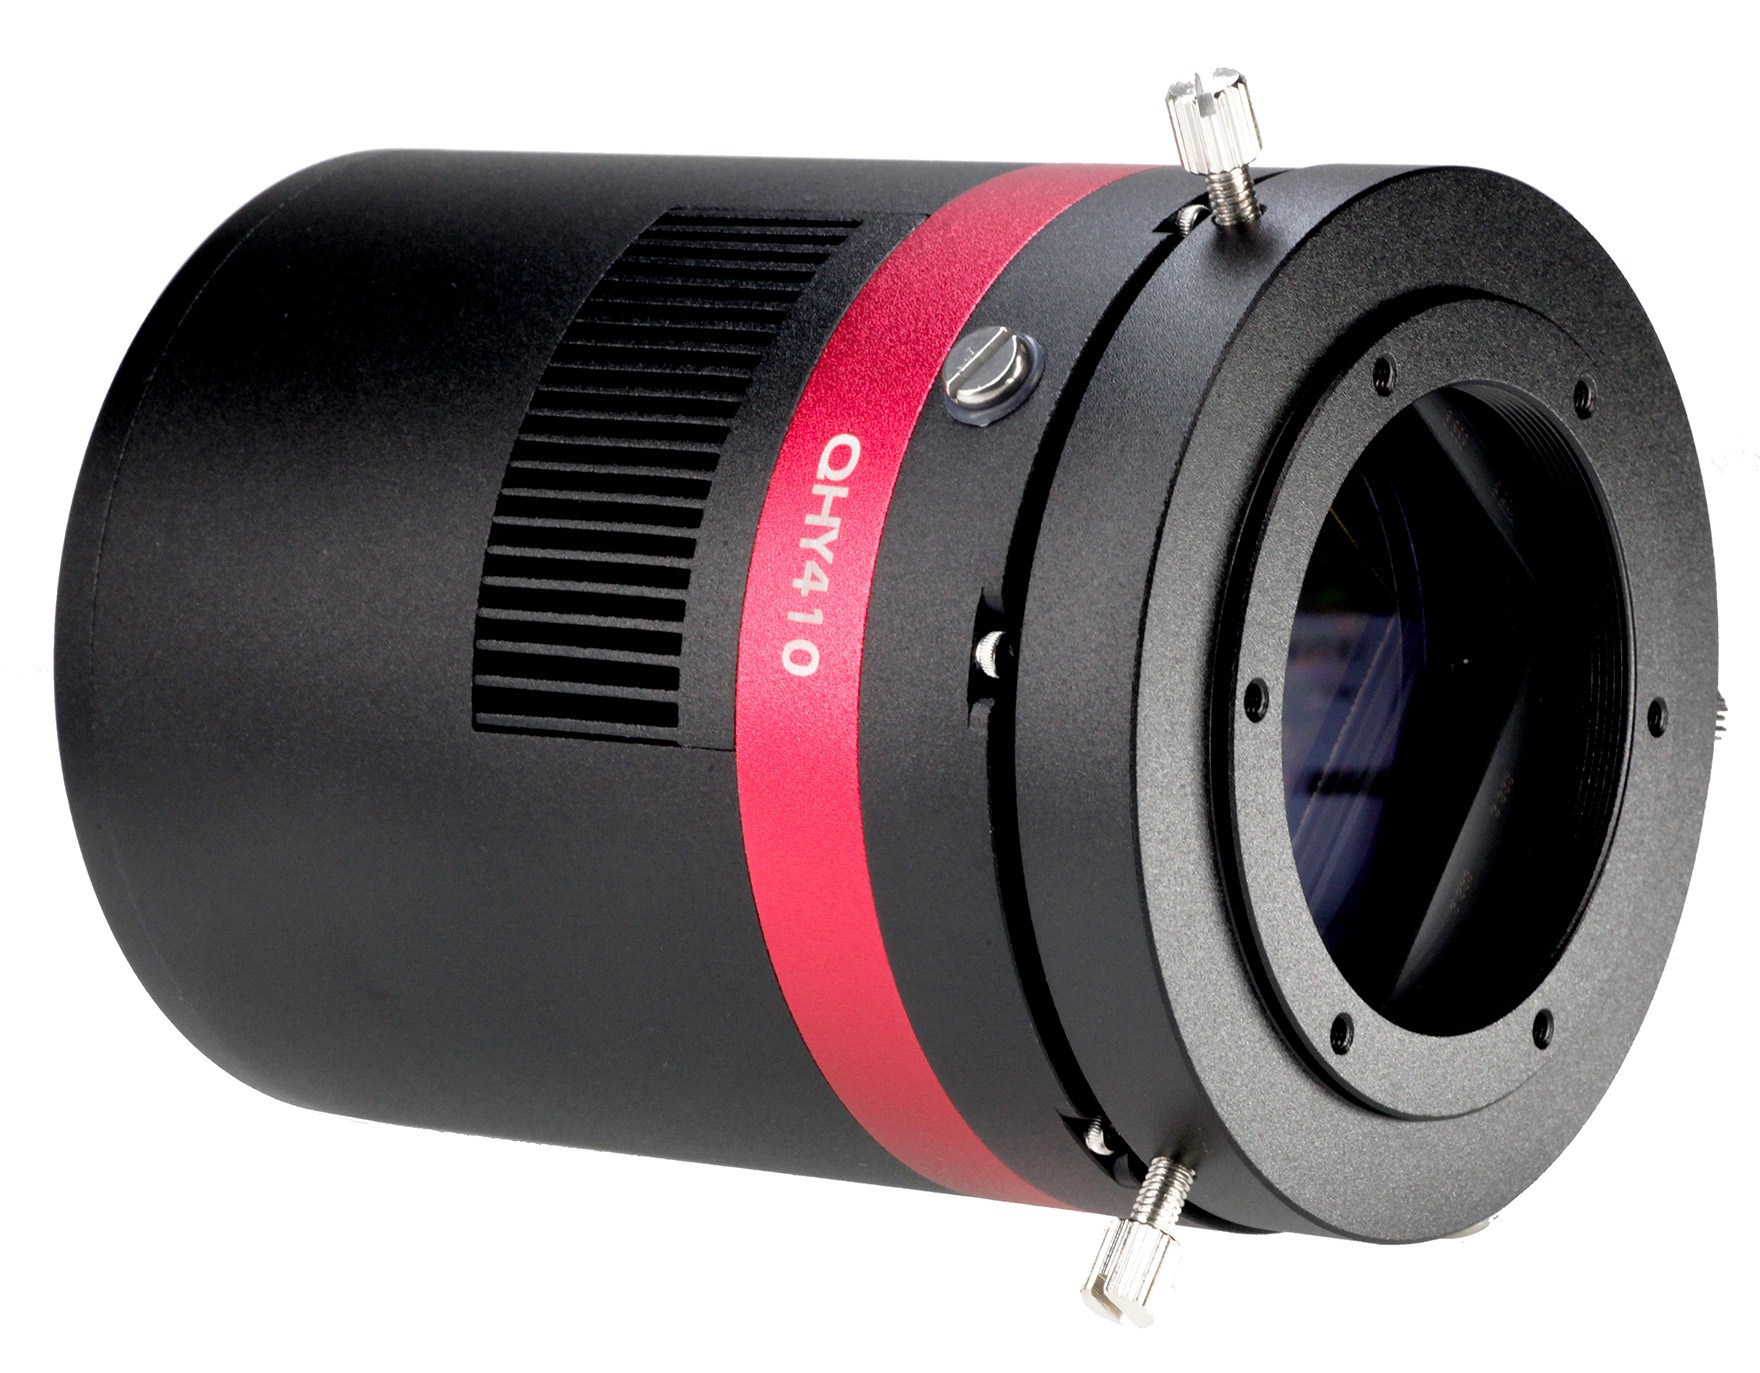 QHY410C BSI Medium Size, 35mm Full Format CMOS camera, cooled